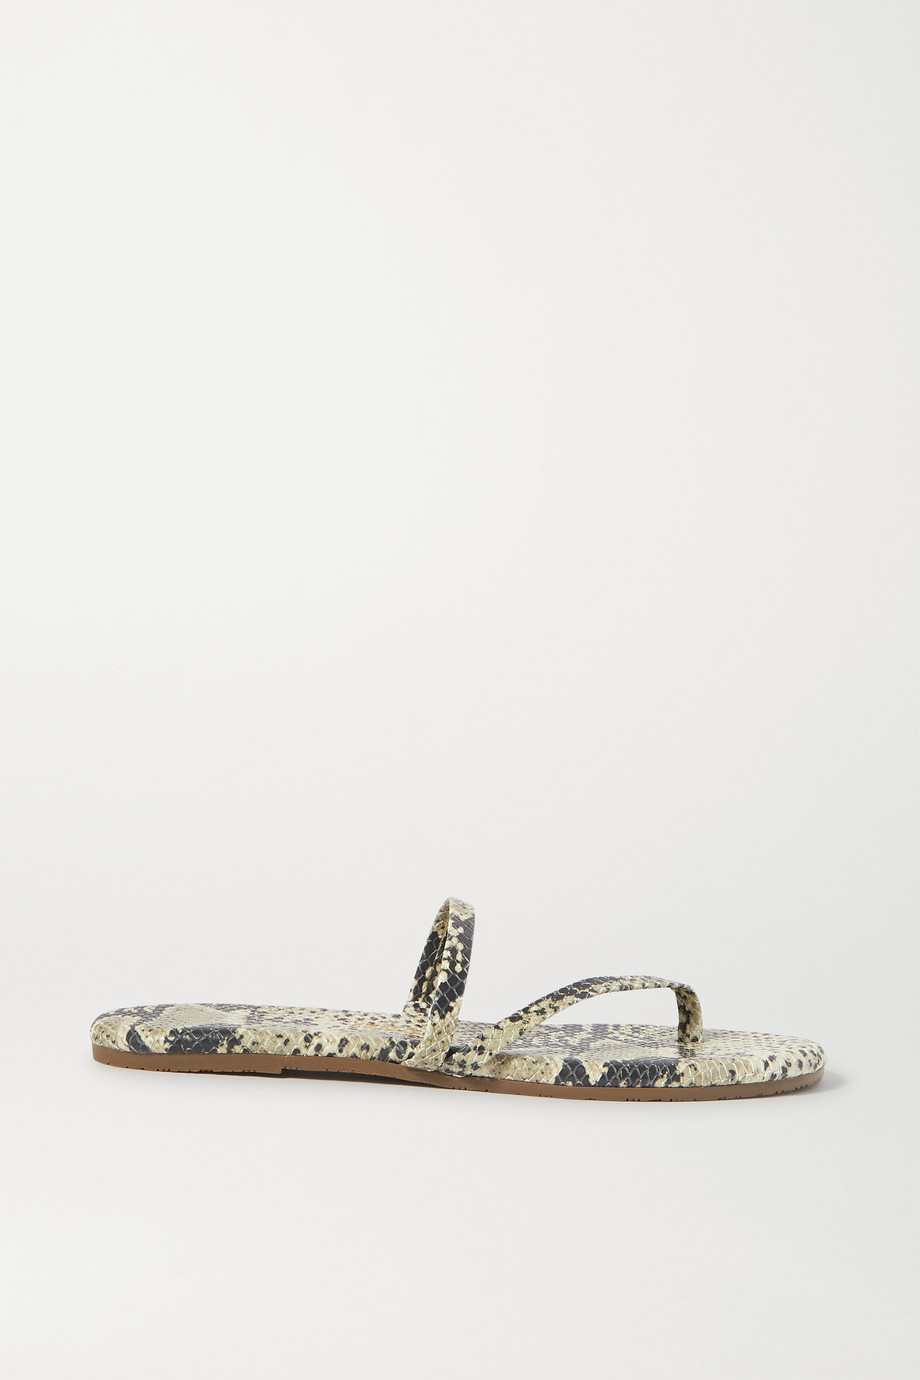 TKEES Sarit snake-effect leather sandals